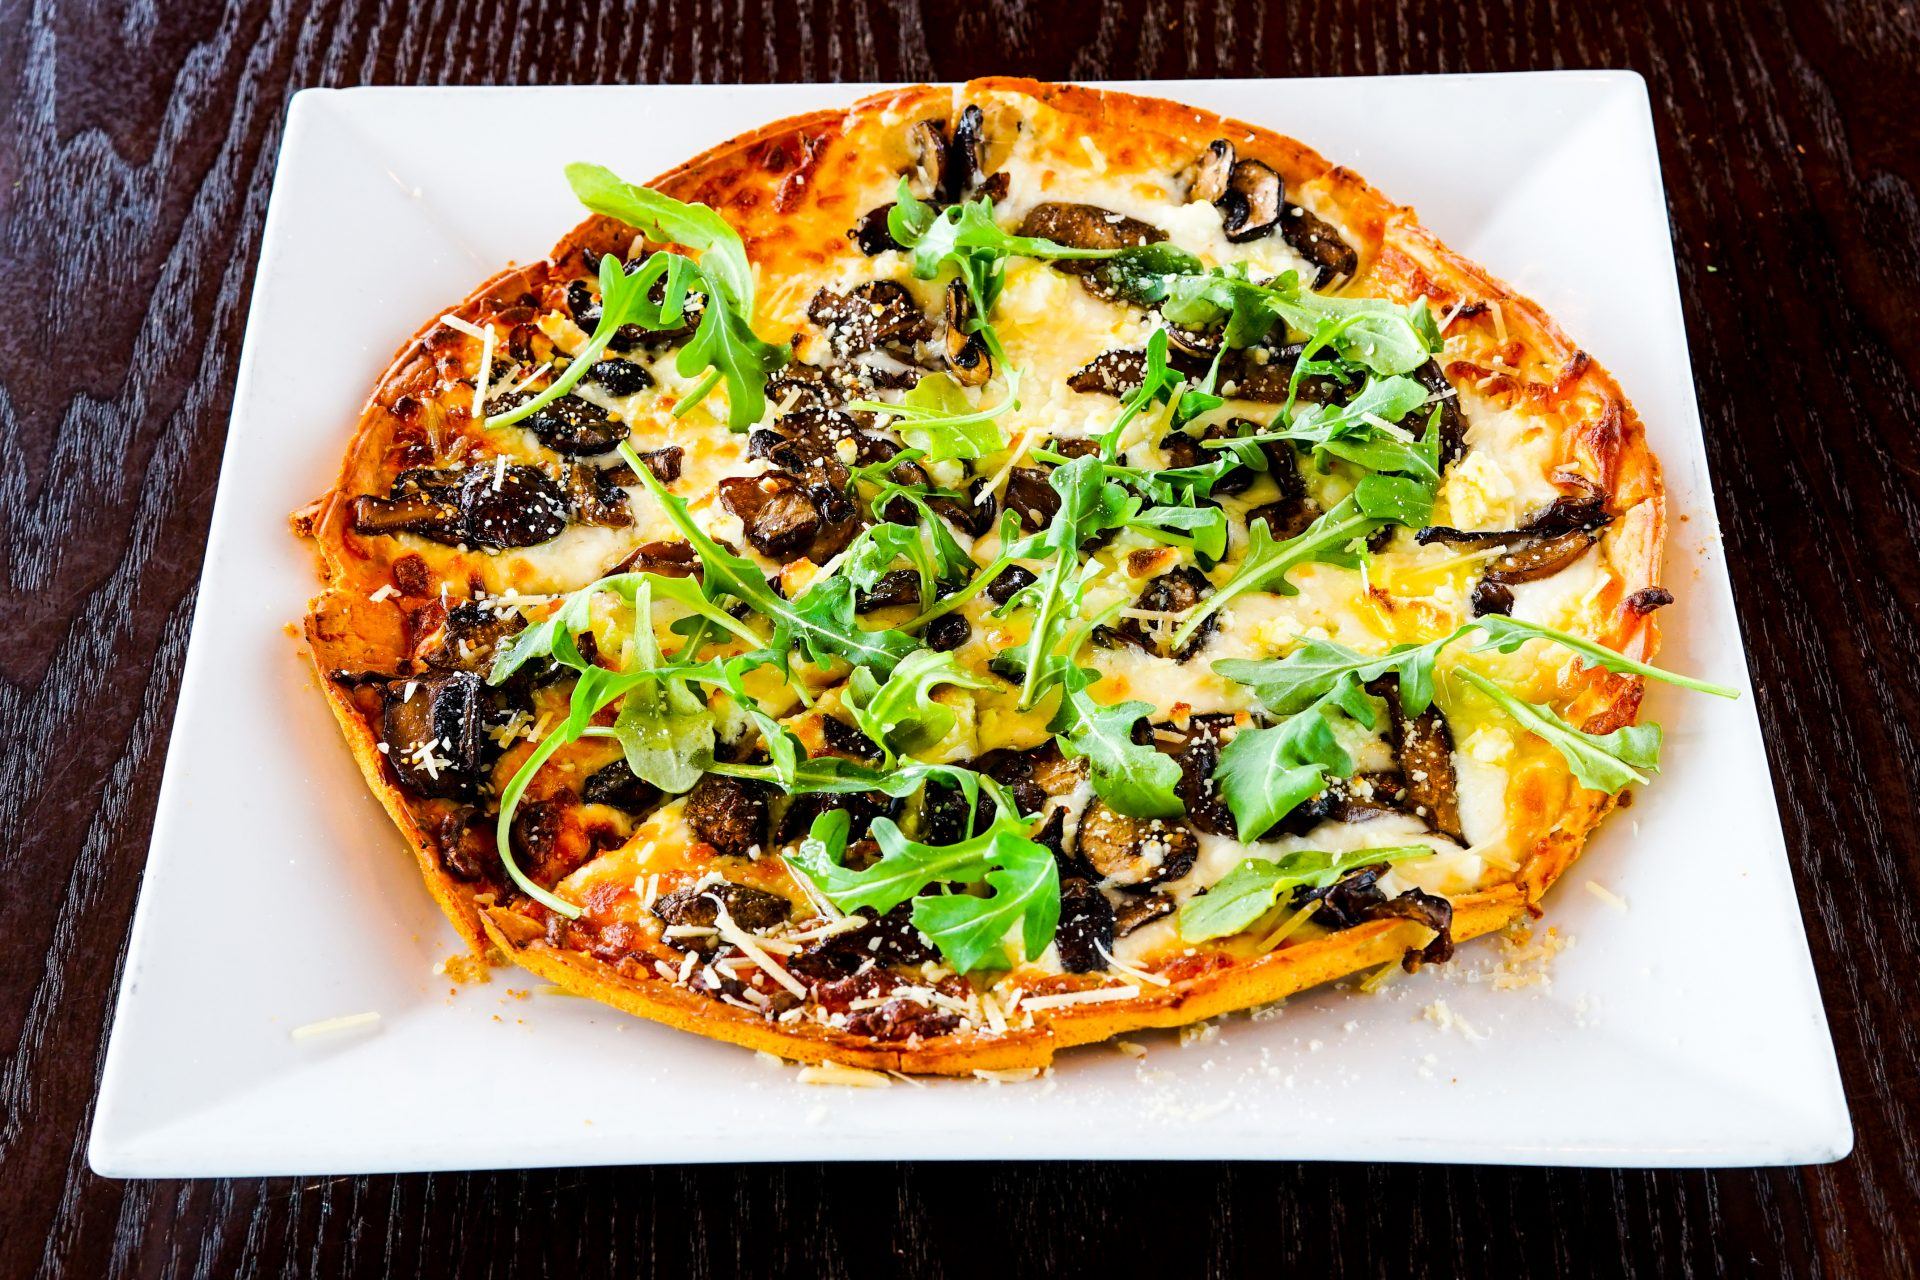 Image of Kennett Square Mushroom - Caramelized Mushroom, Baby Arugula, Mozzarella & Goat Cheese, Garlic Oil,